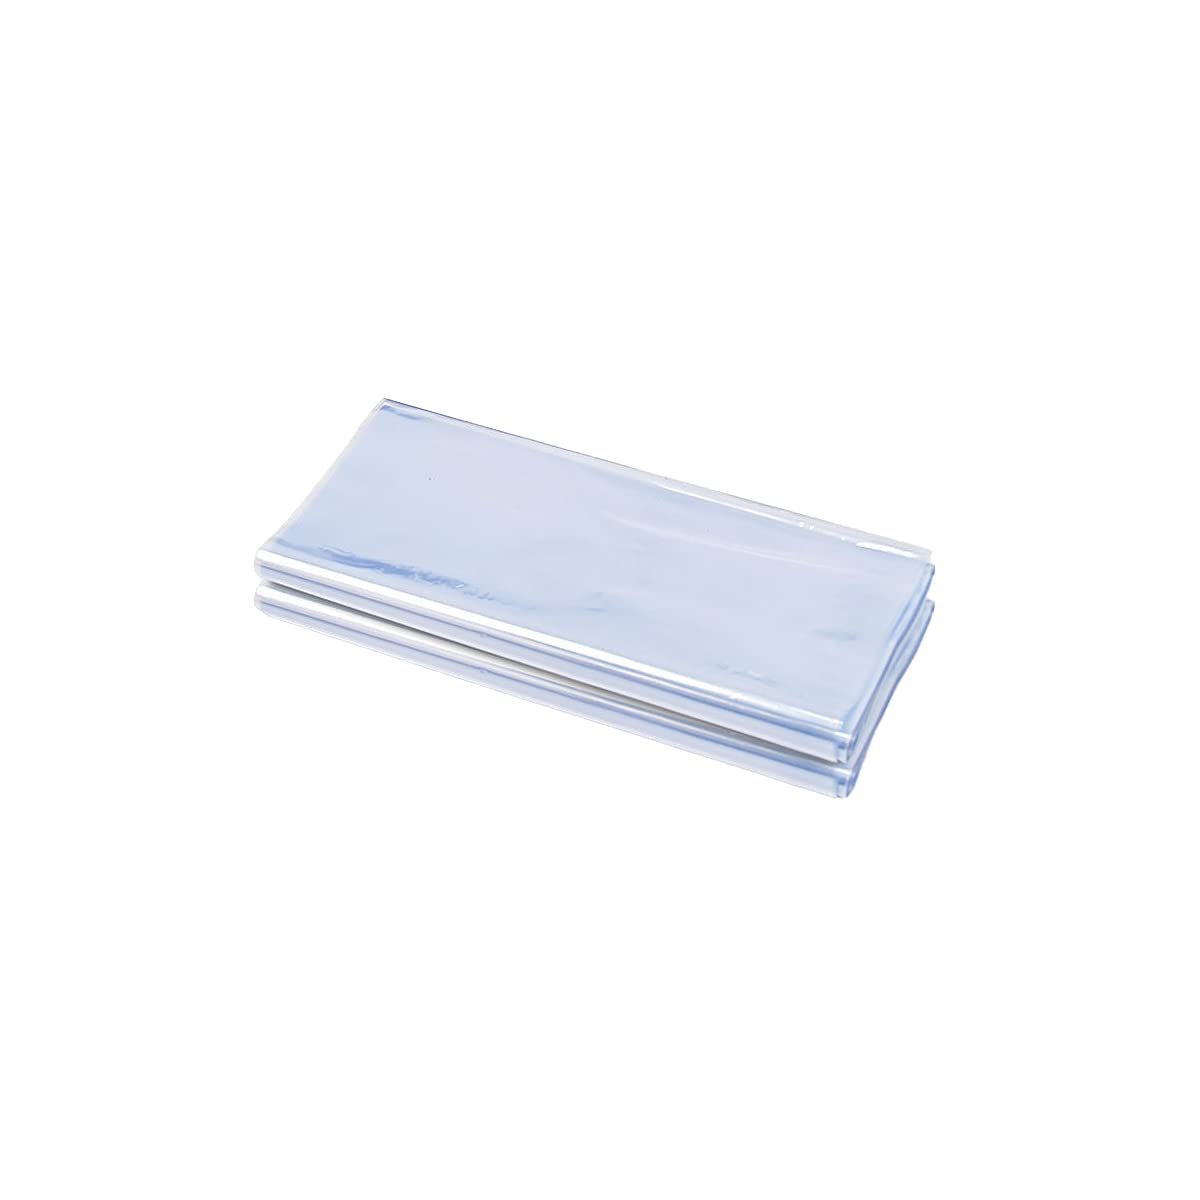 Shrink Wrap, Hoatai 100pack 12x18 Inches Clear PVC Heat Shrink P